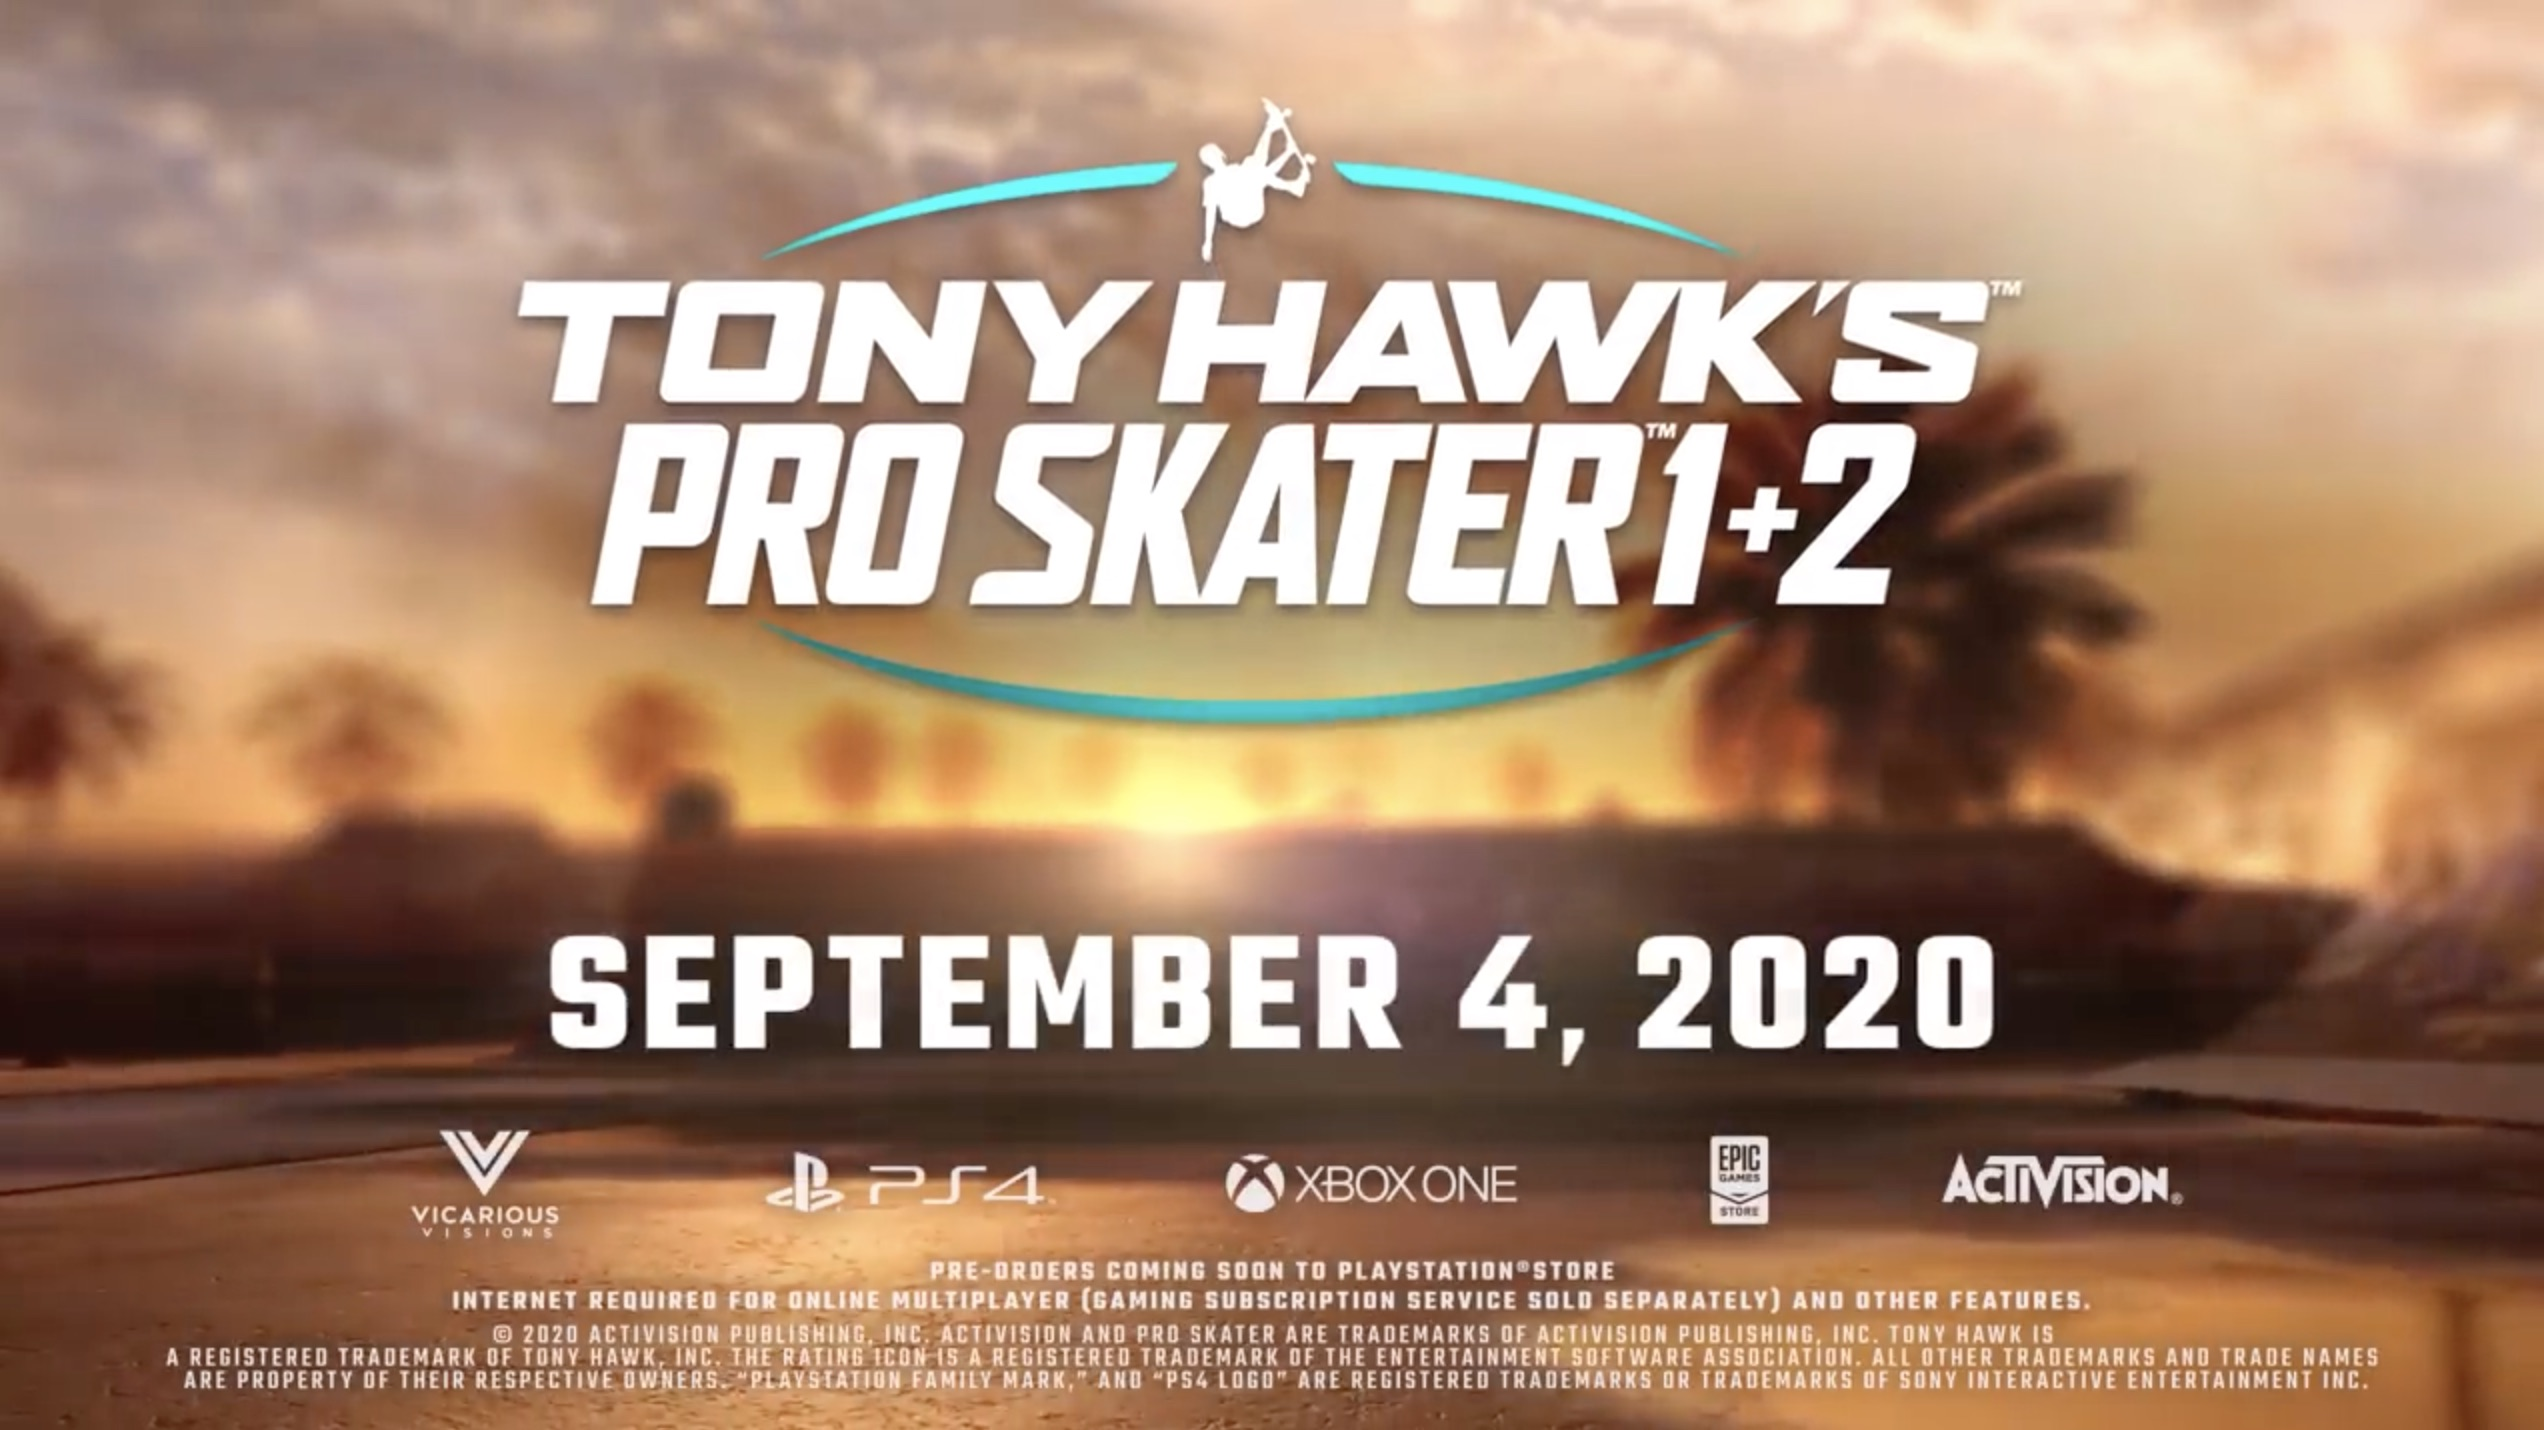 Tony Hawk's Pro Skater 1 and 2 Remake